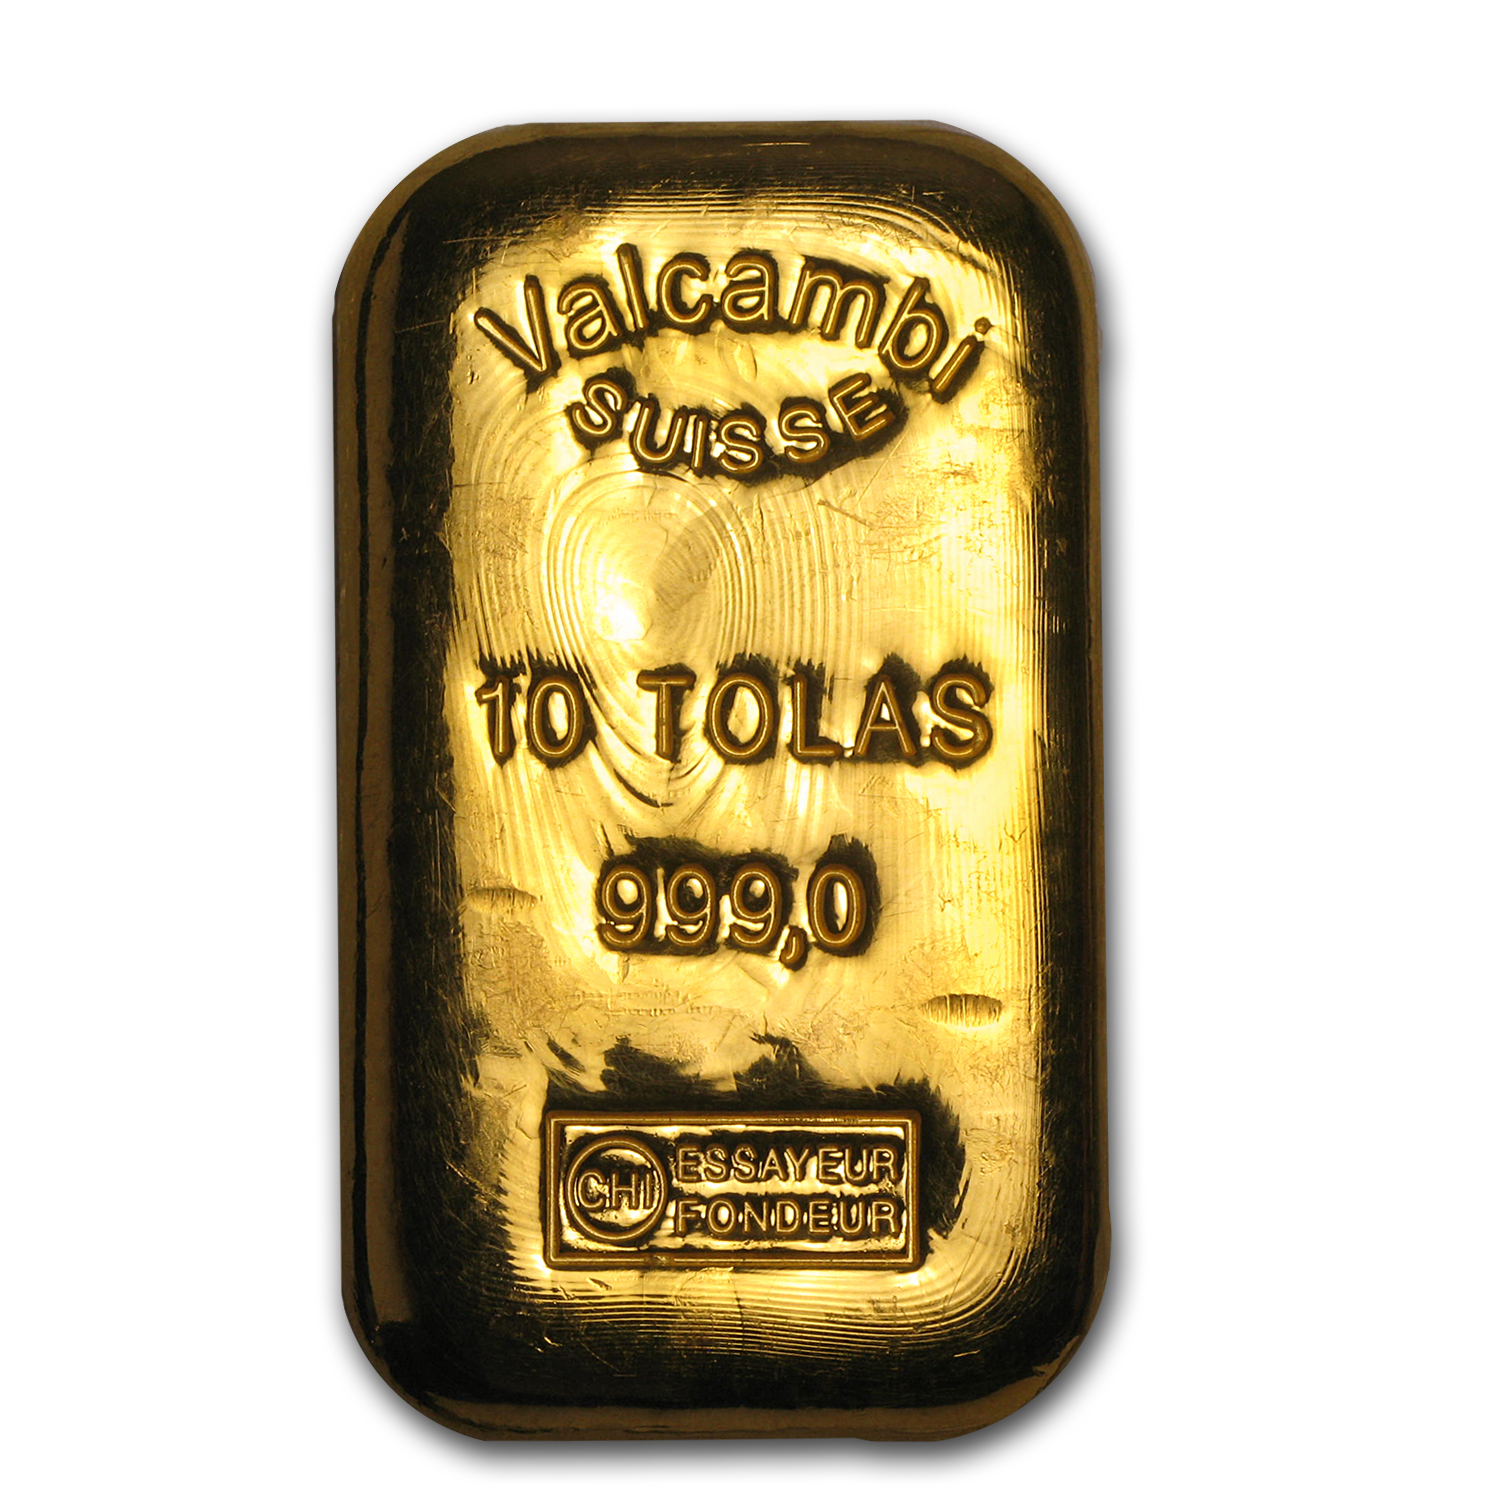 10 Tolas Gold Bar - Valcambi Suisse (3.75 oz)